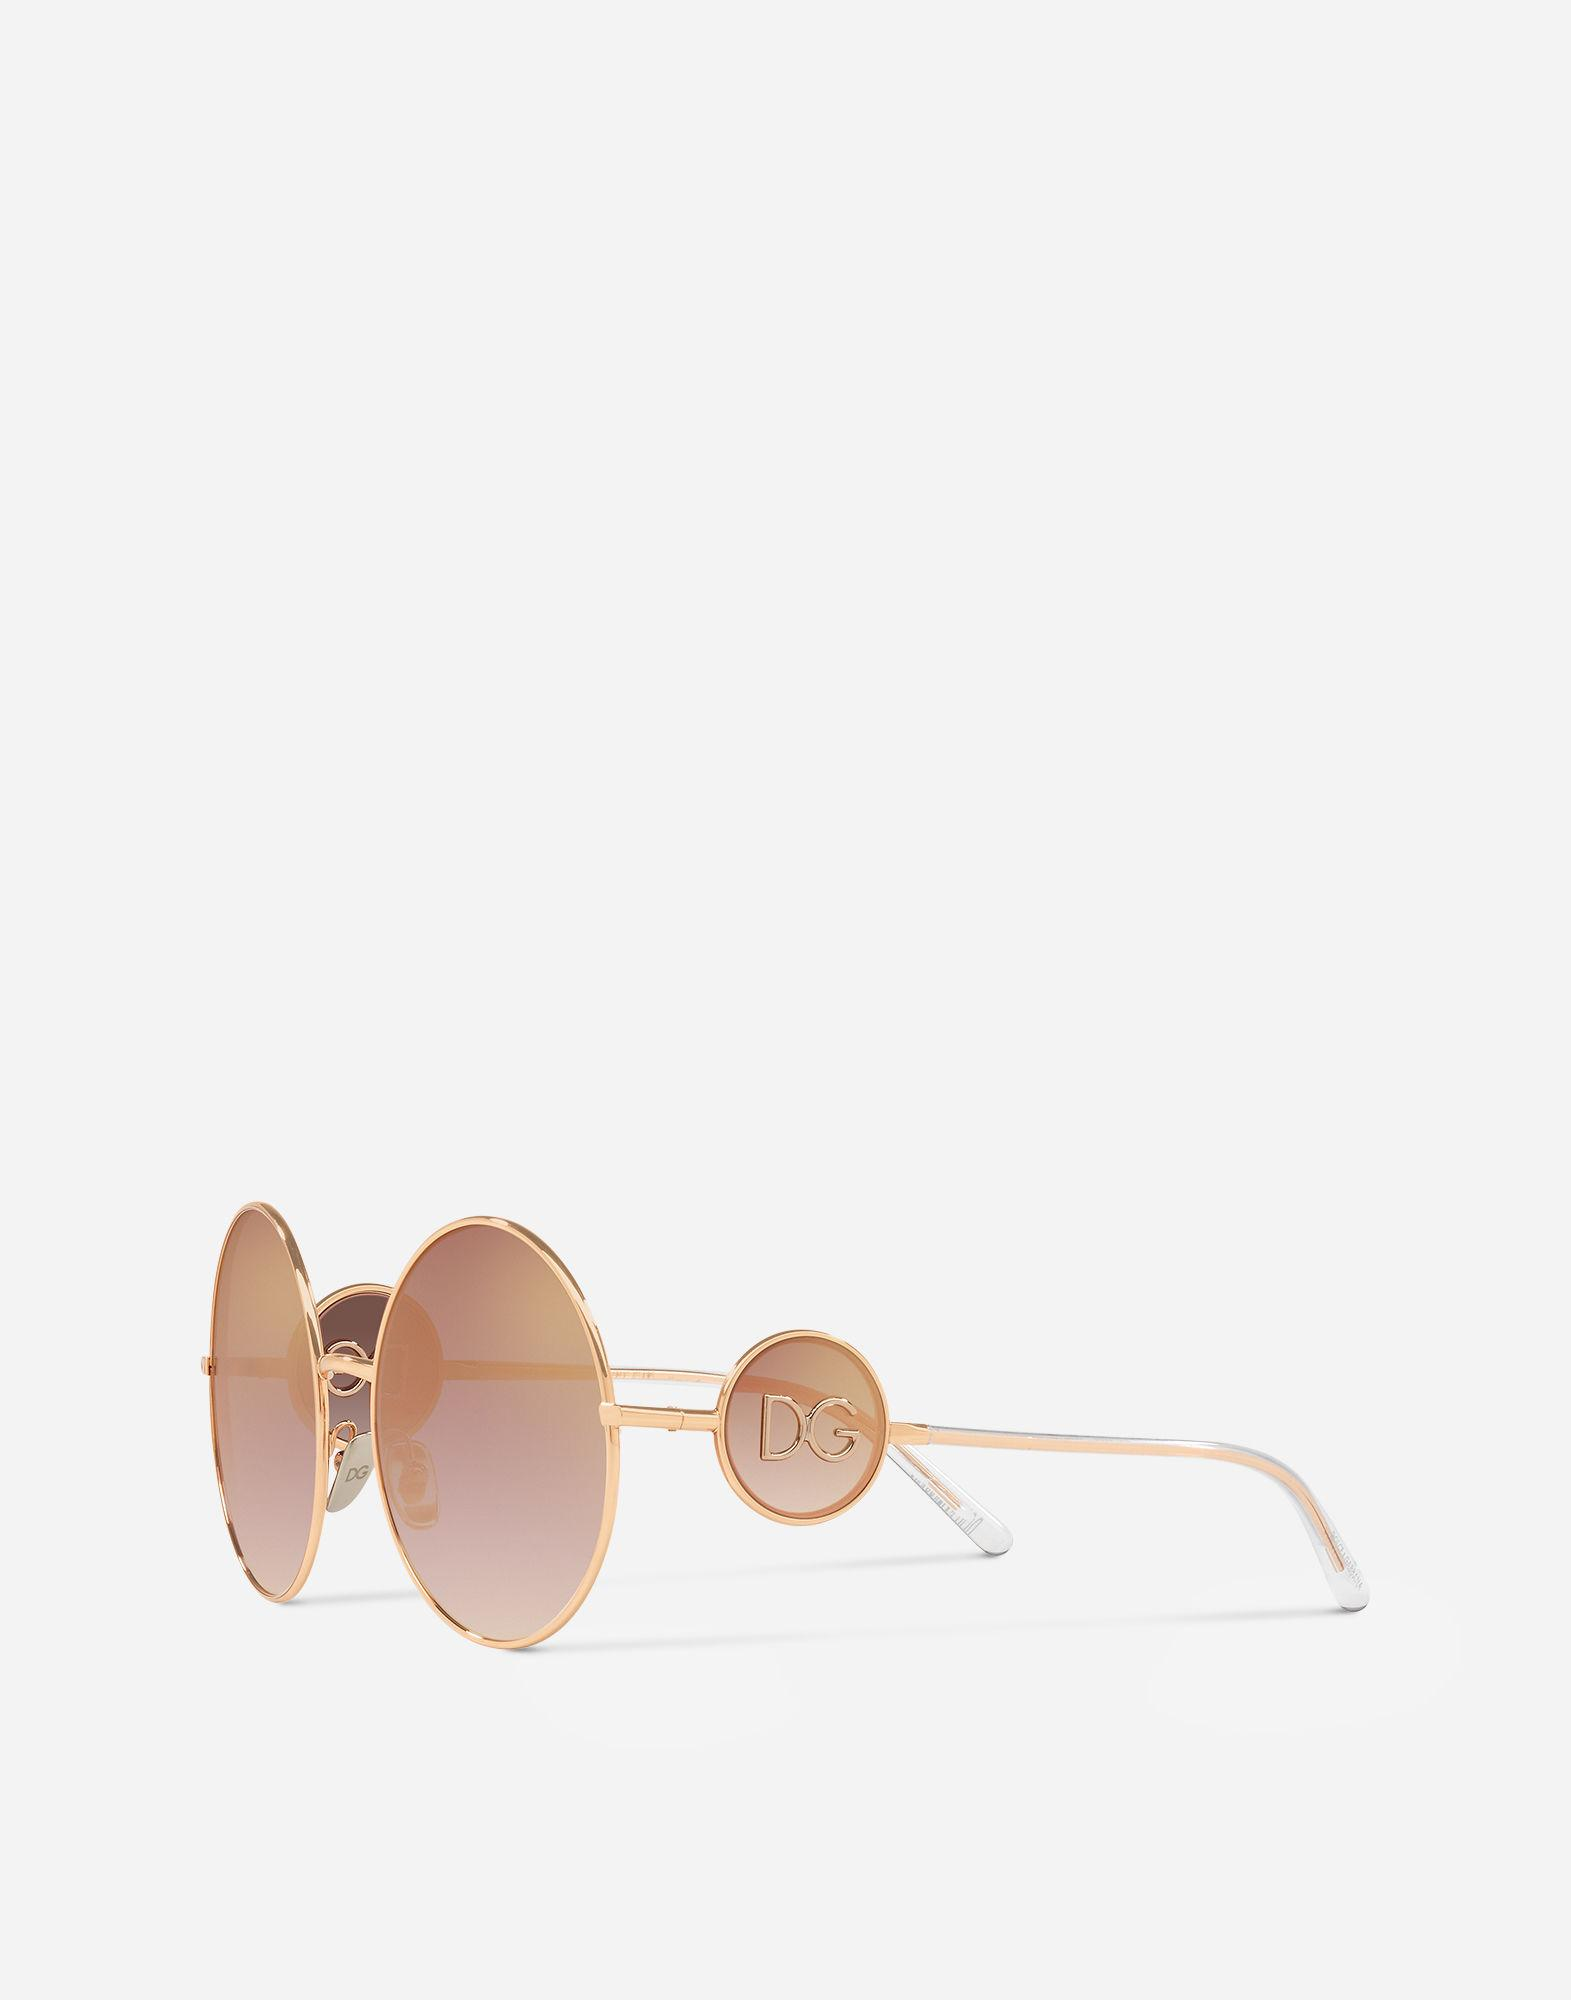 ff388823f4 Lyst - Dolce   Gabbana Round Metal Sunglasses With Dg Logo in Pink